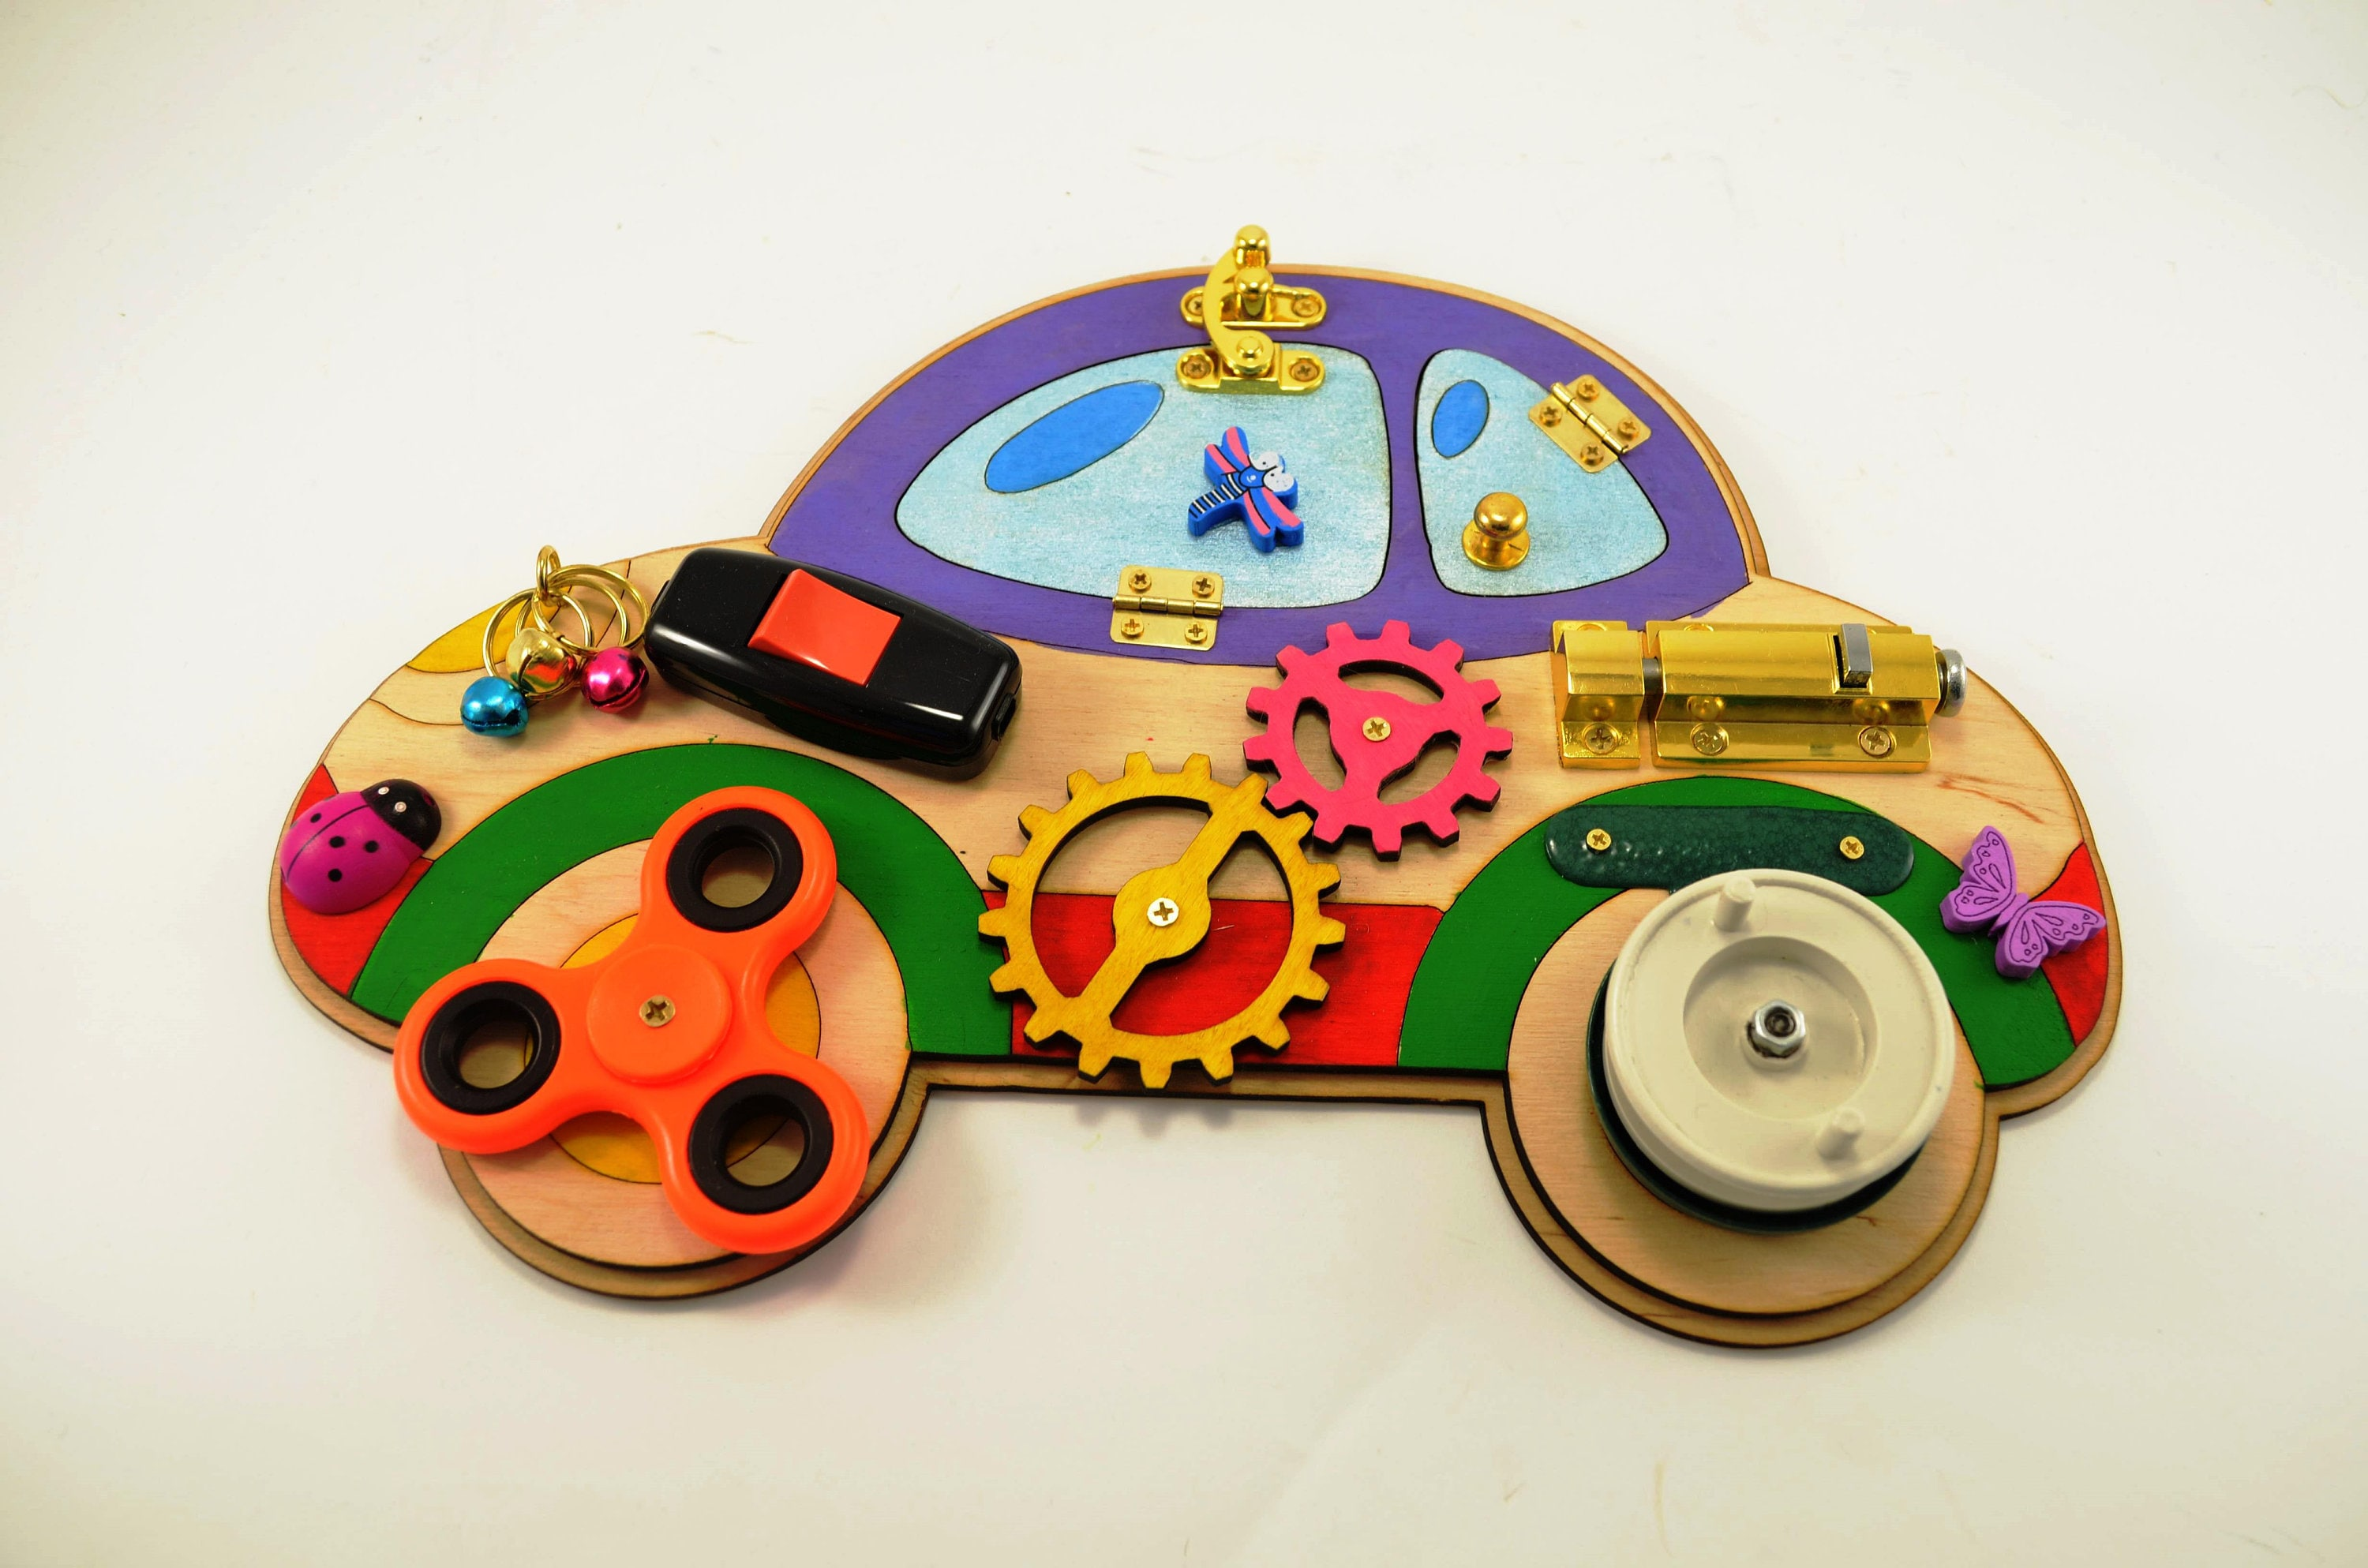 Car Busy board Toddler toys Activity board Wooden toys Sensory board Montessori kid toy Learning toy 1 year old Latch board Baby toys Gifrs